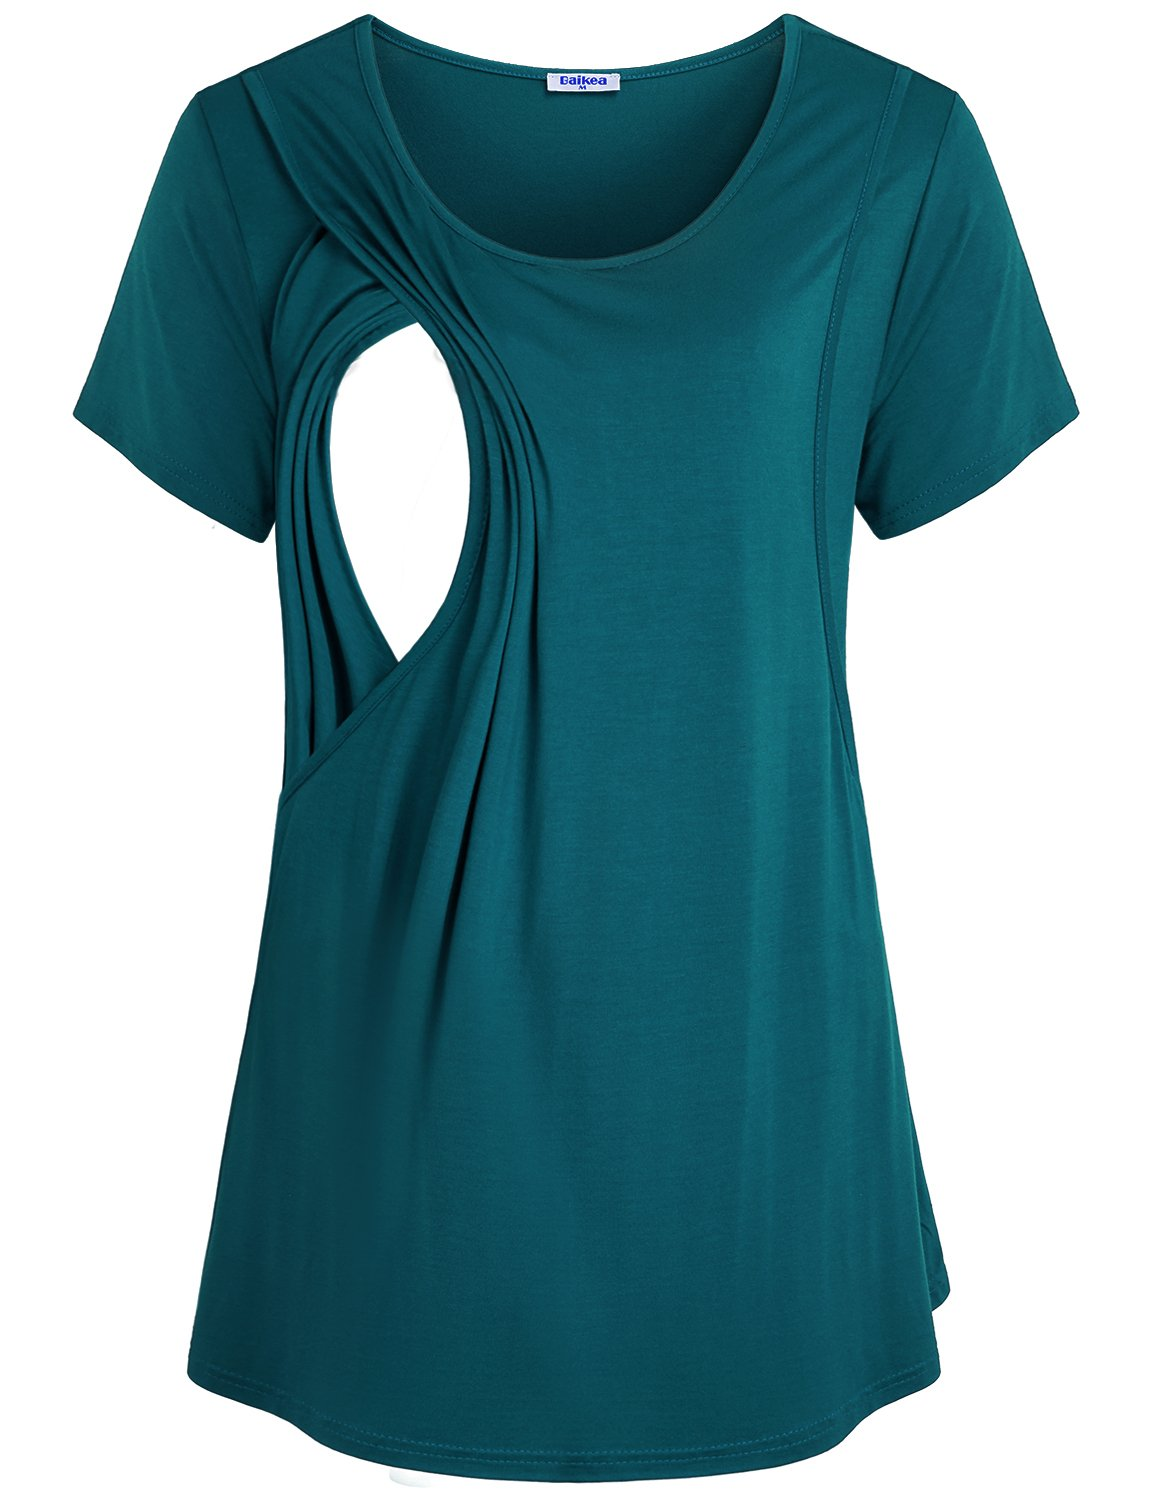 Baikea Breastfeeding Shirt, Matrnity Short Sleeve Breastfeeding Tee Shirt Moms Flattering Comfortable Stylish Side-Up Pullover Nursing Top Day Out House Wear Cyan